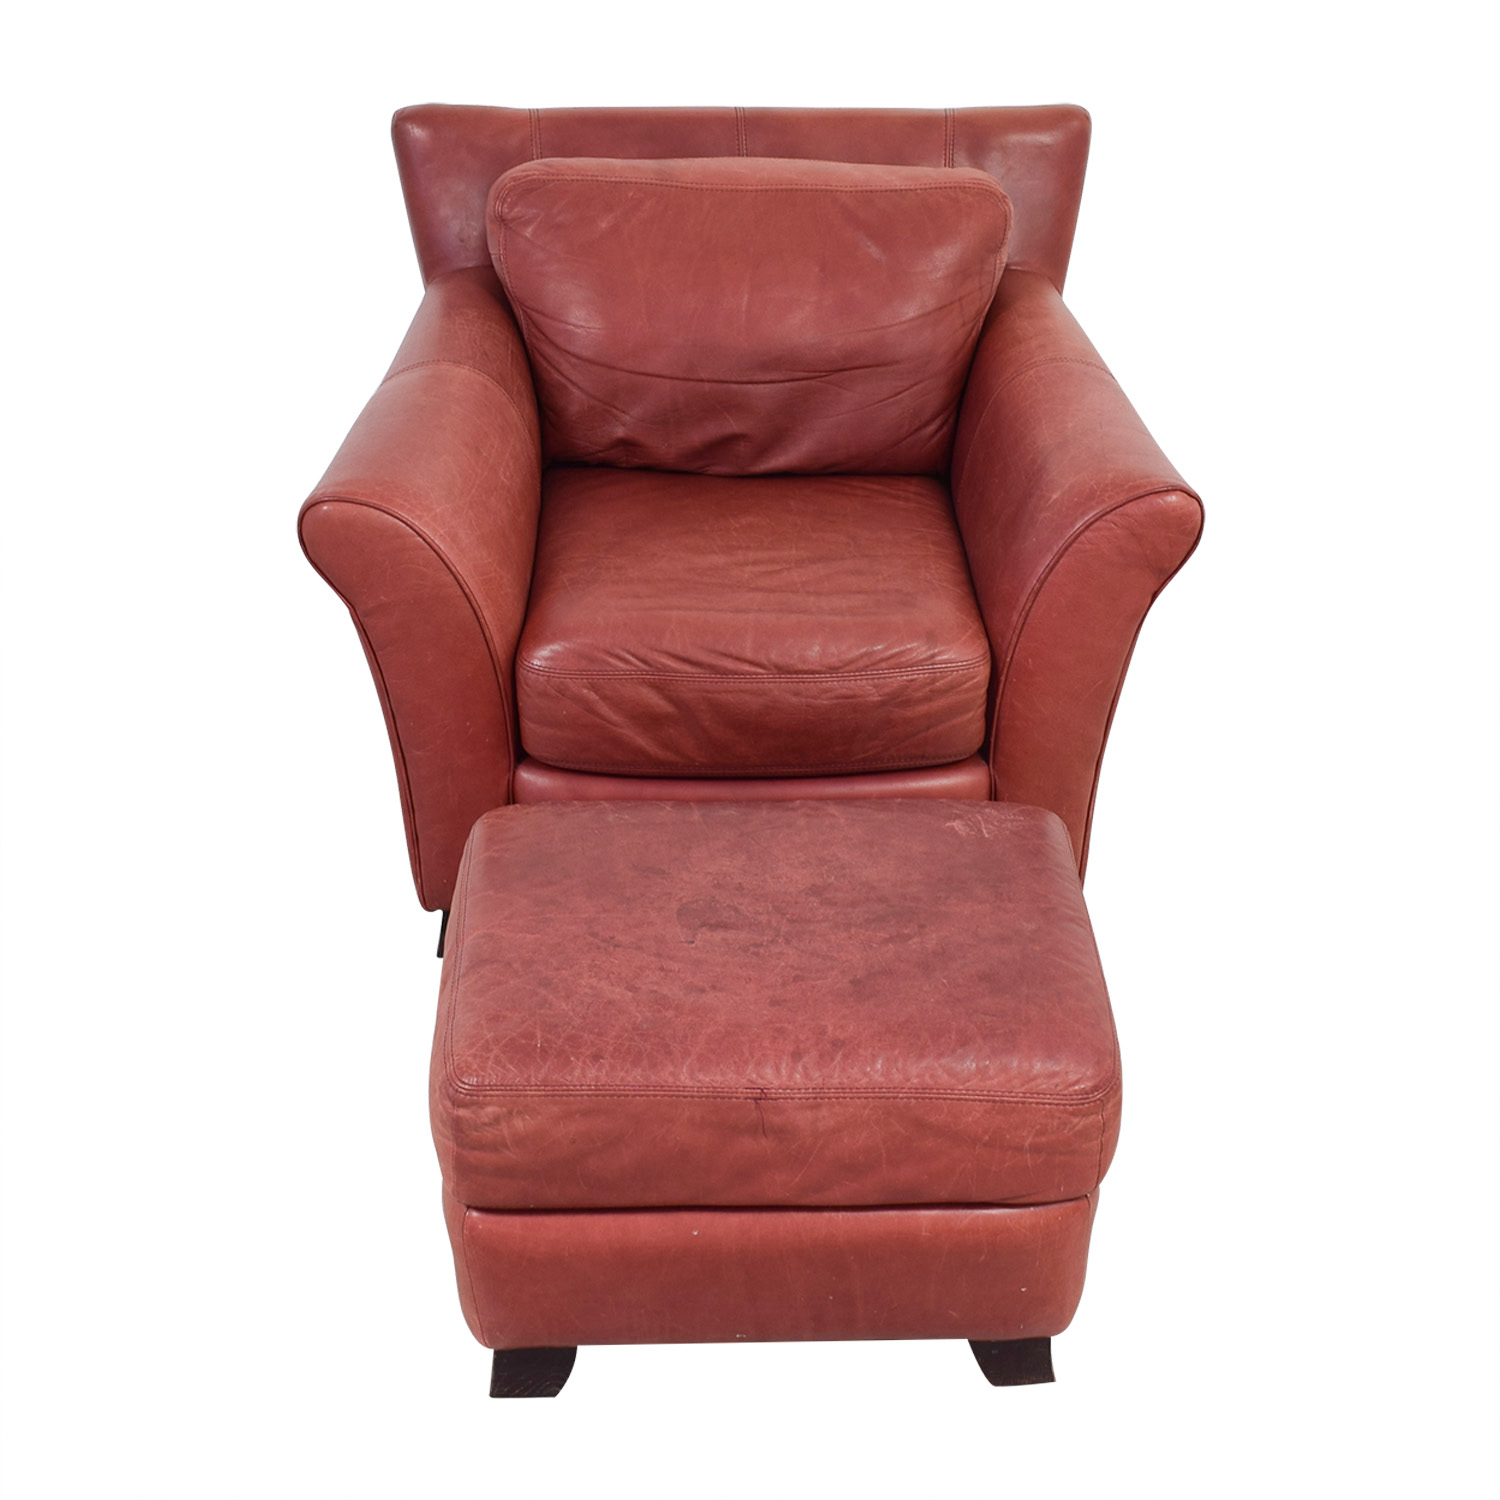 Palliser Red Leather Chair and Ottoman / Chairs